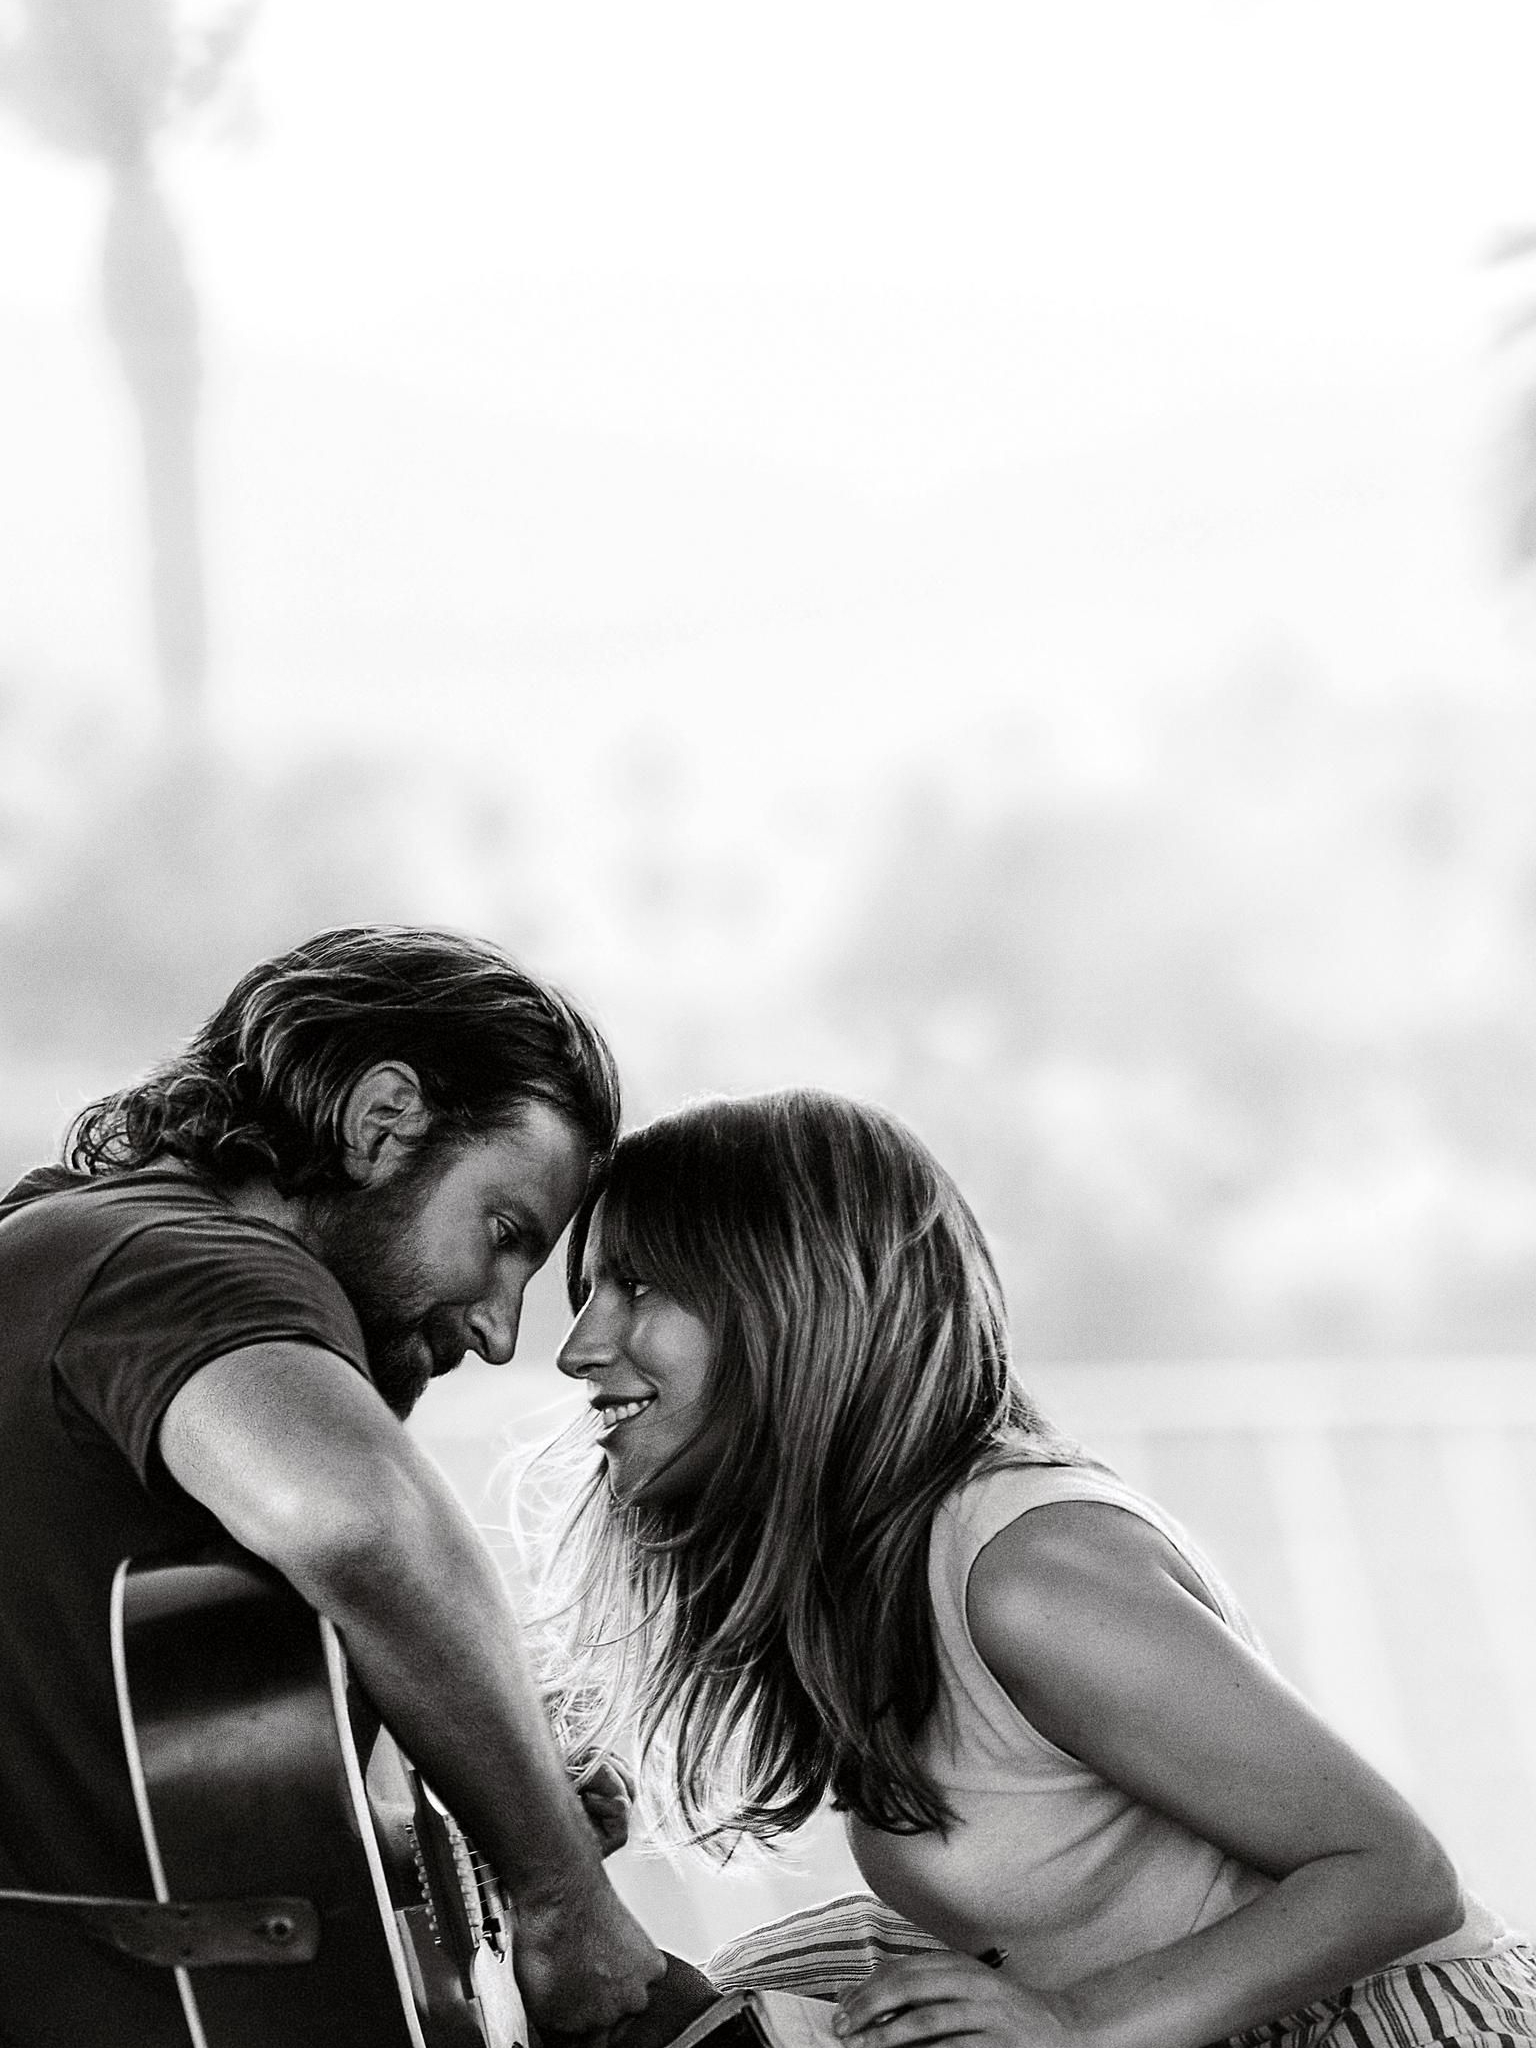 Free Download A Star Is Born 2018 Phone Wallpaper In 2019